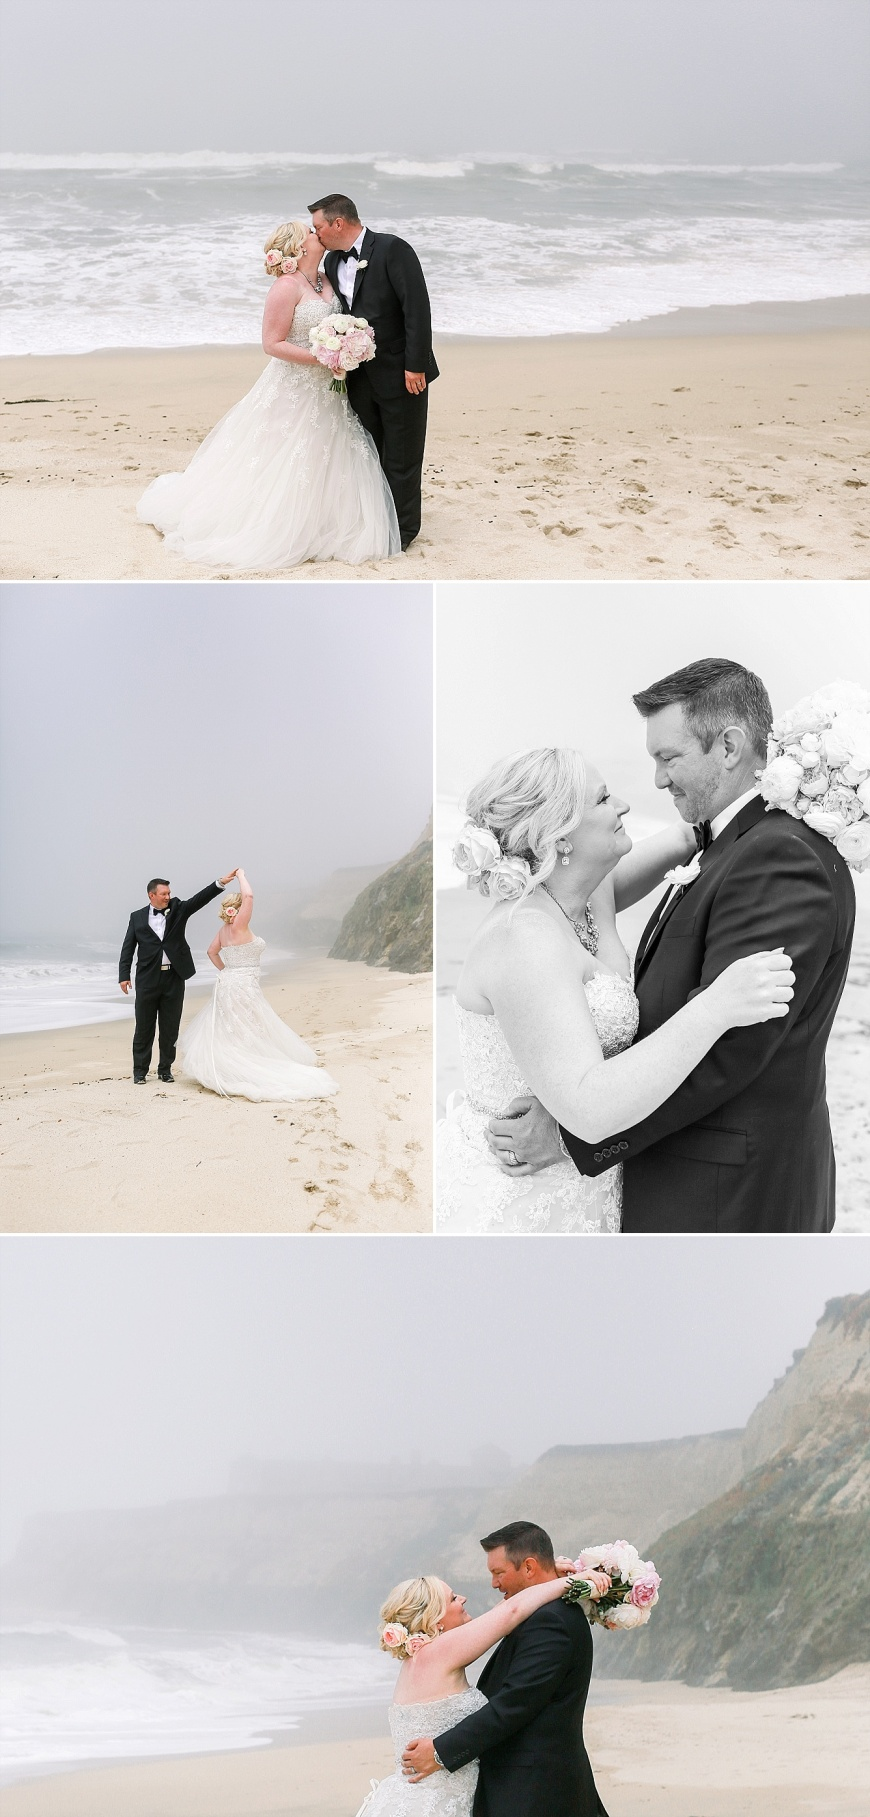 The-Ritz-Carlton-Half-Moon-Bay-Wedding-Photographer_1047.jpg